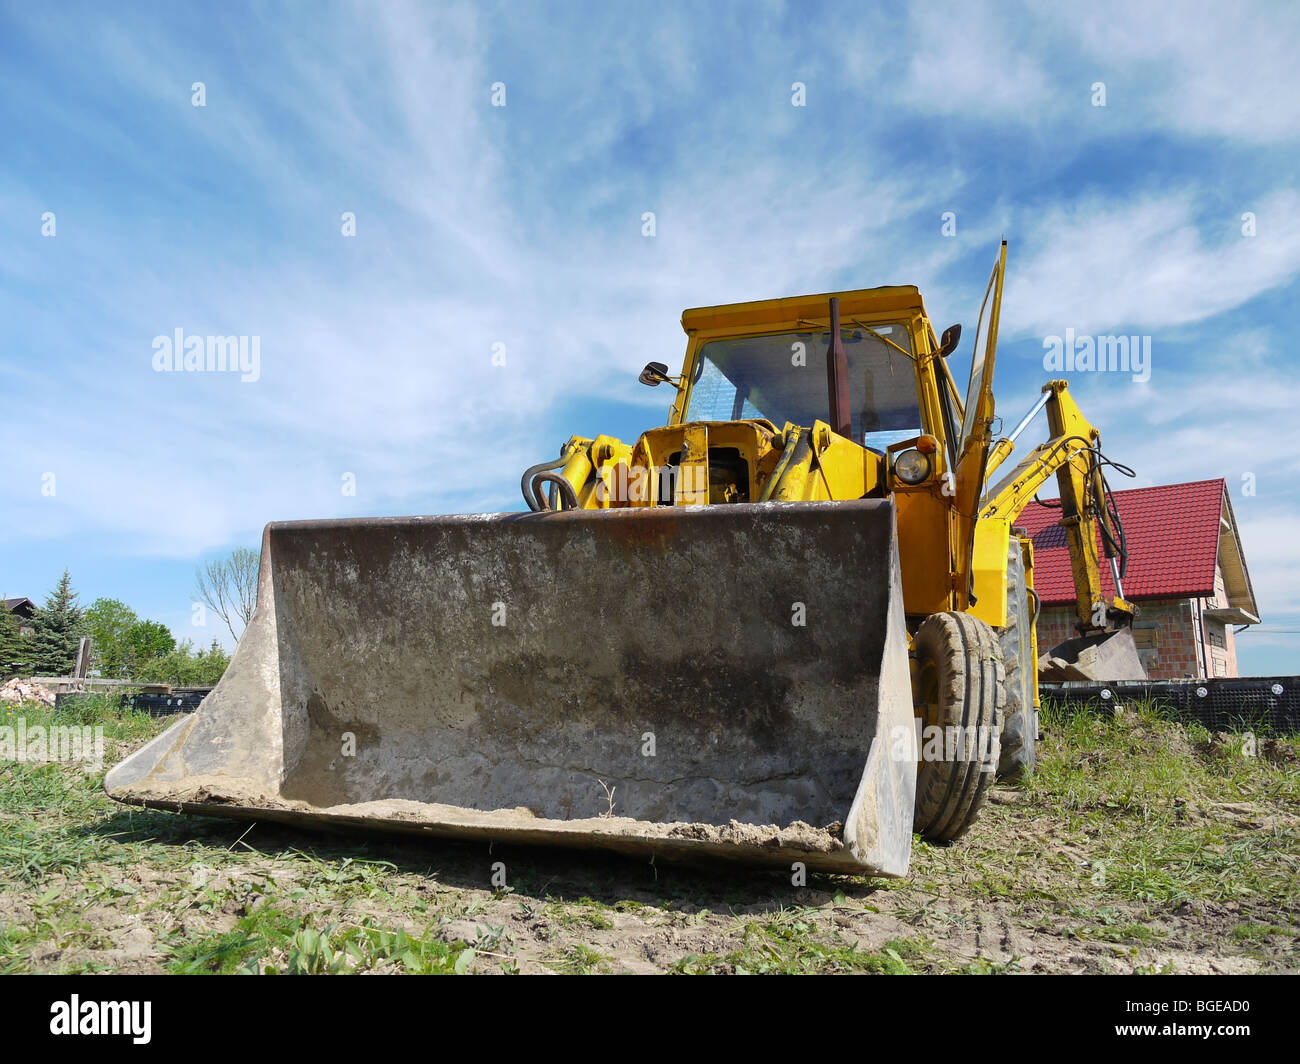 Yellow backhoe loader parked at construction site - Stock Image